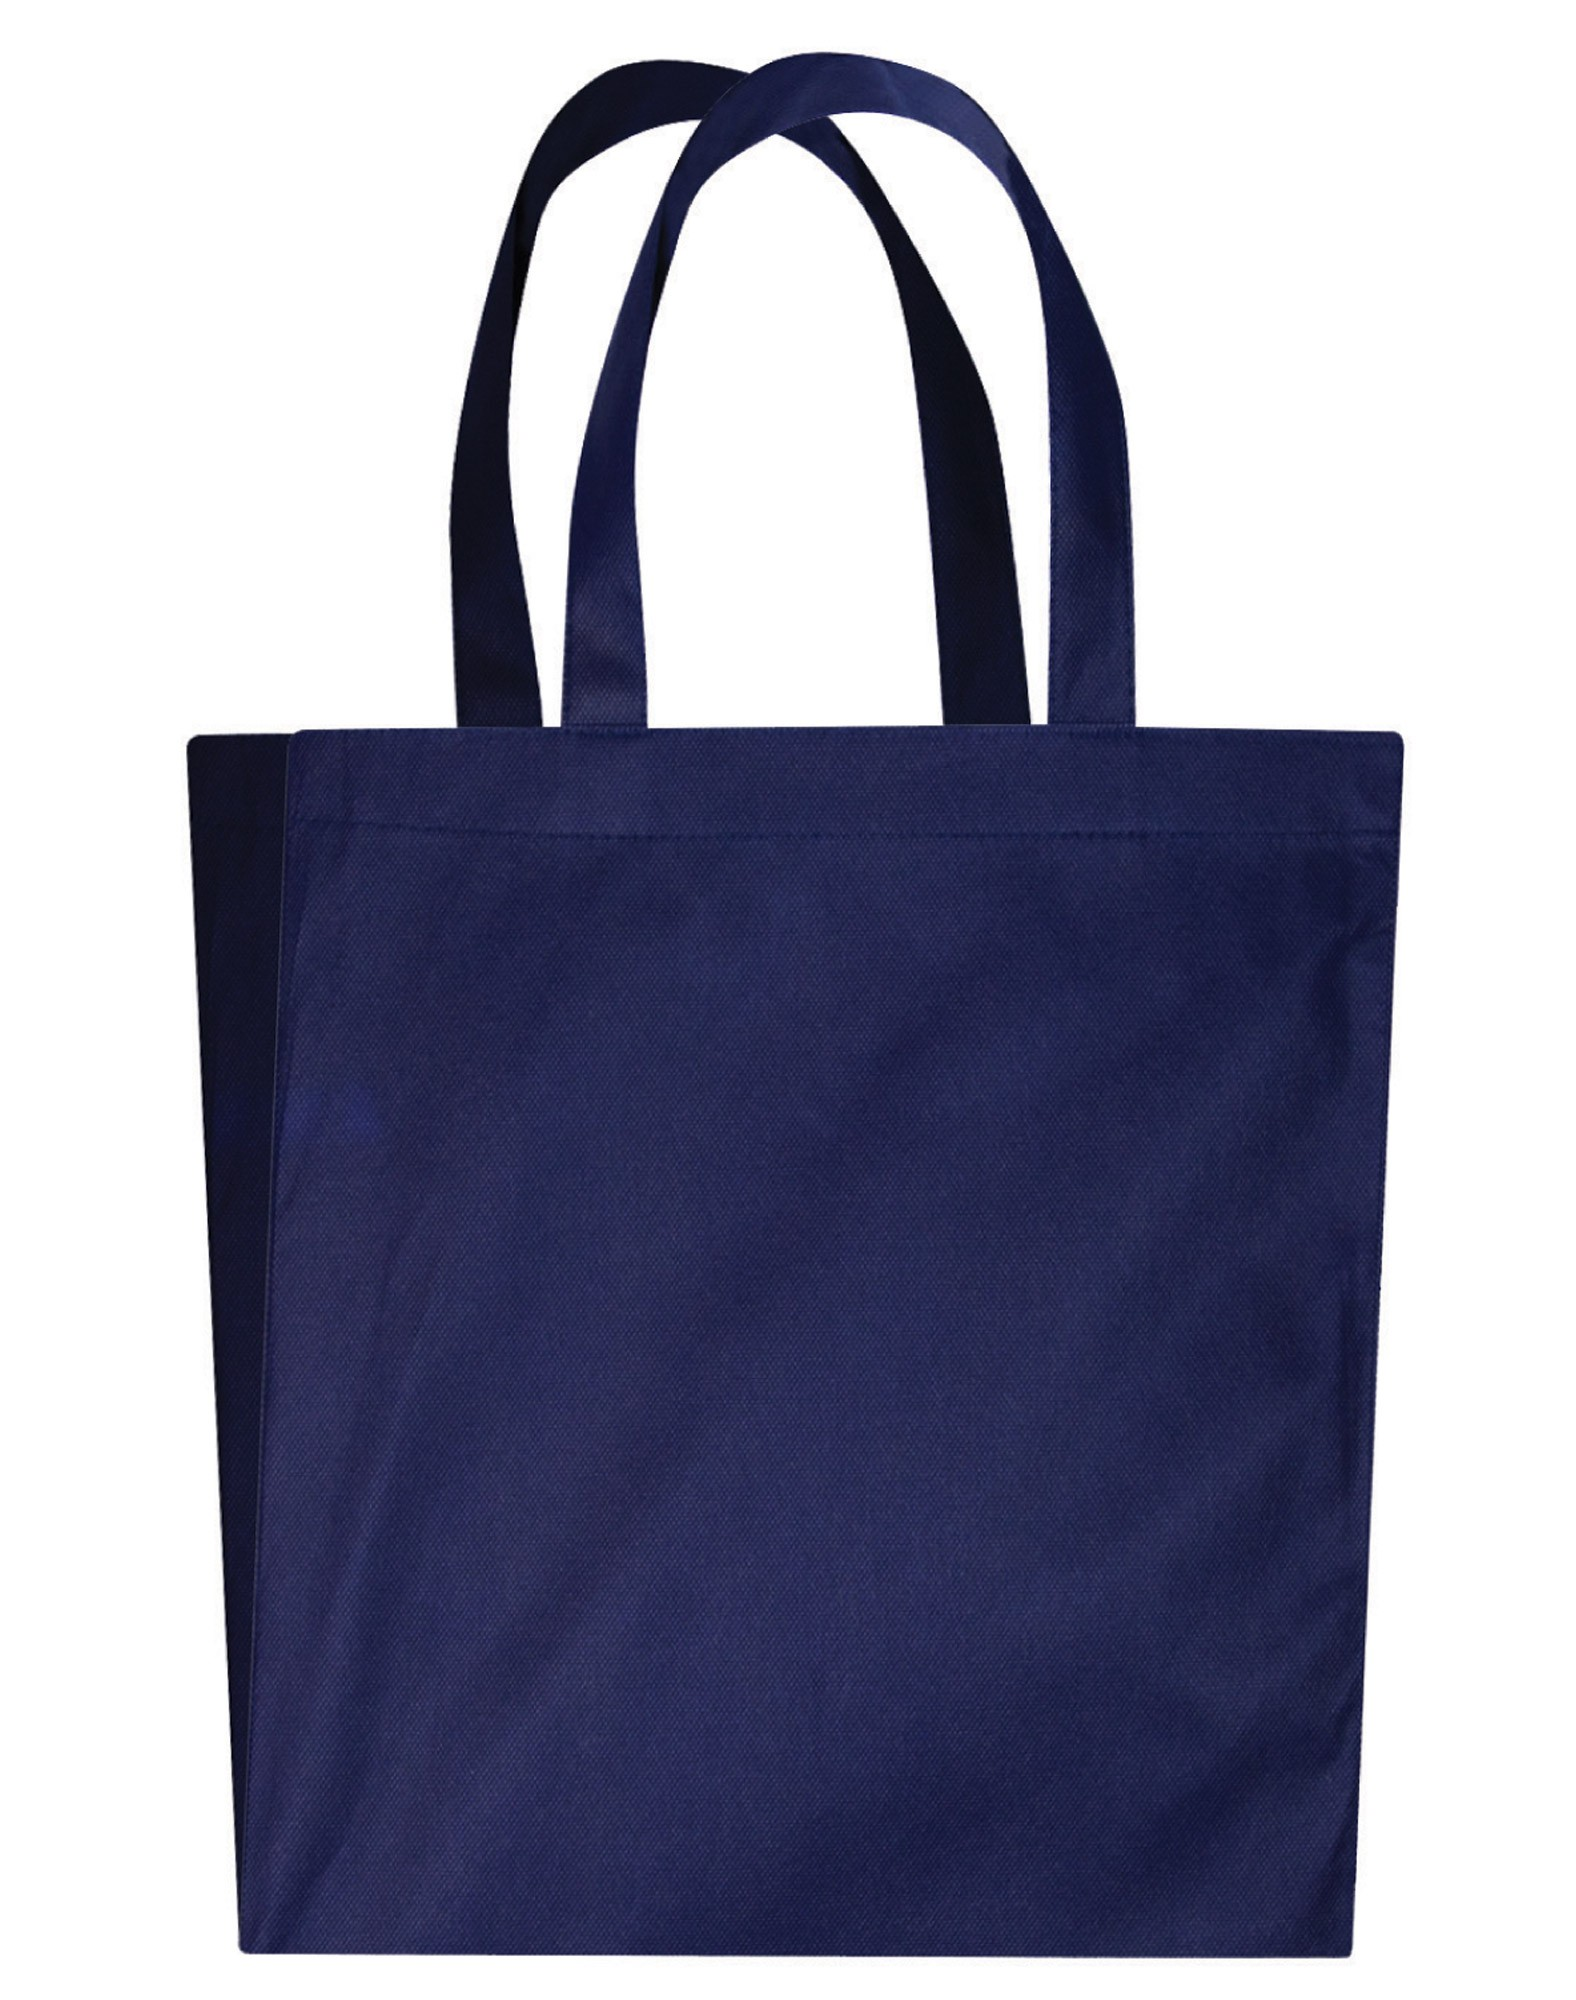 NON WOVEN BAG WITH V-SHAPED GUSSET